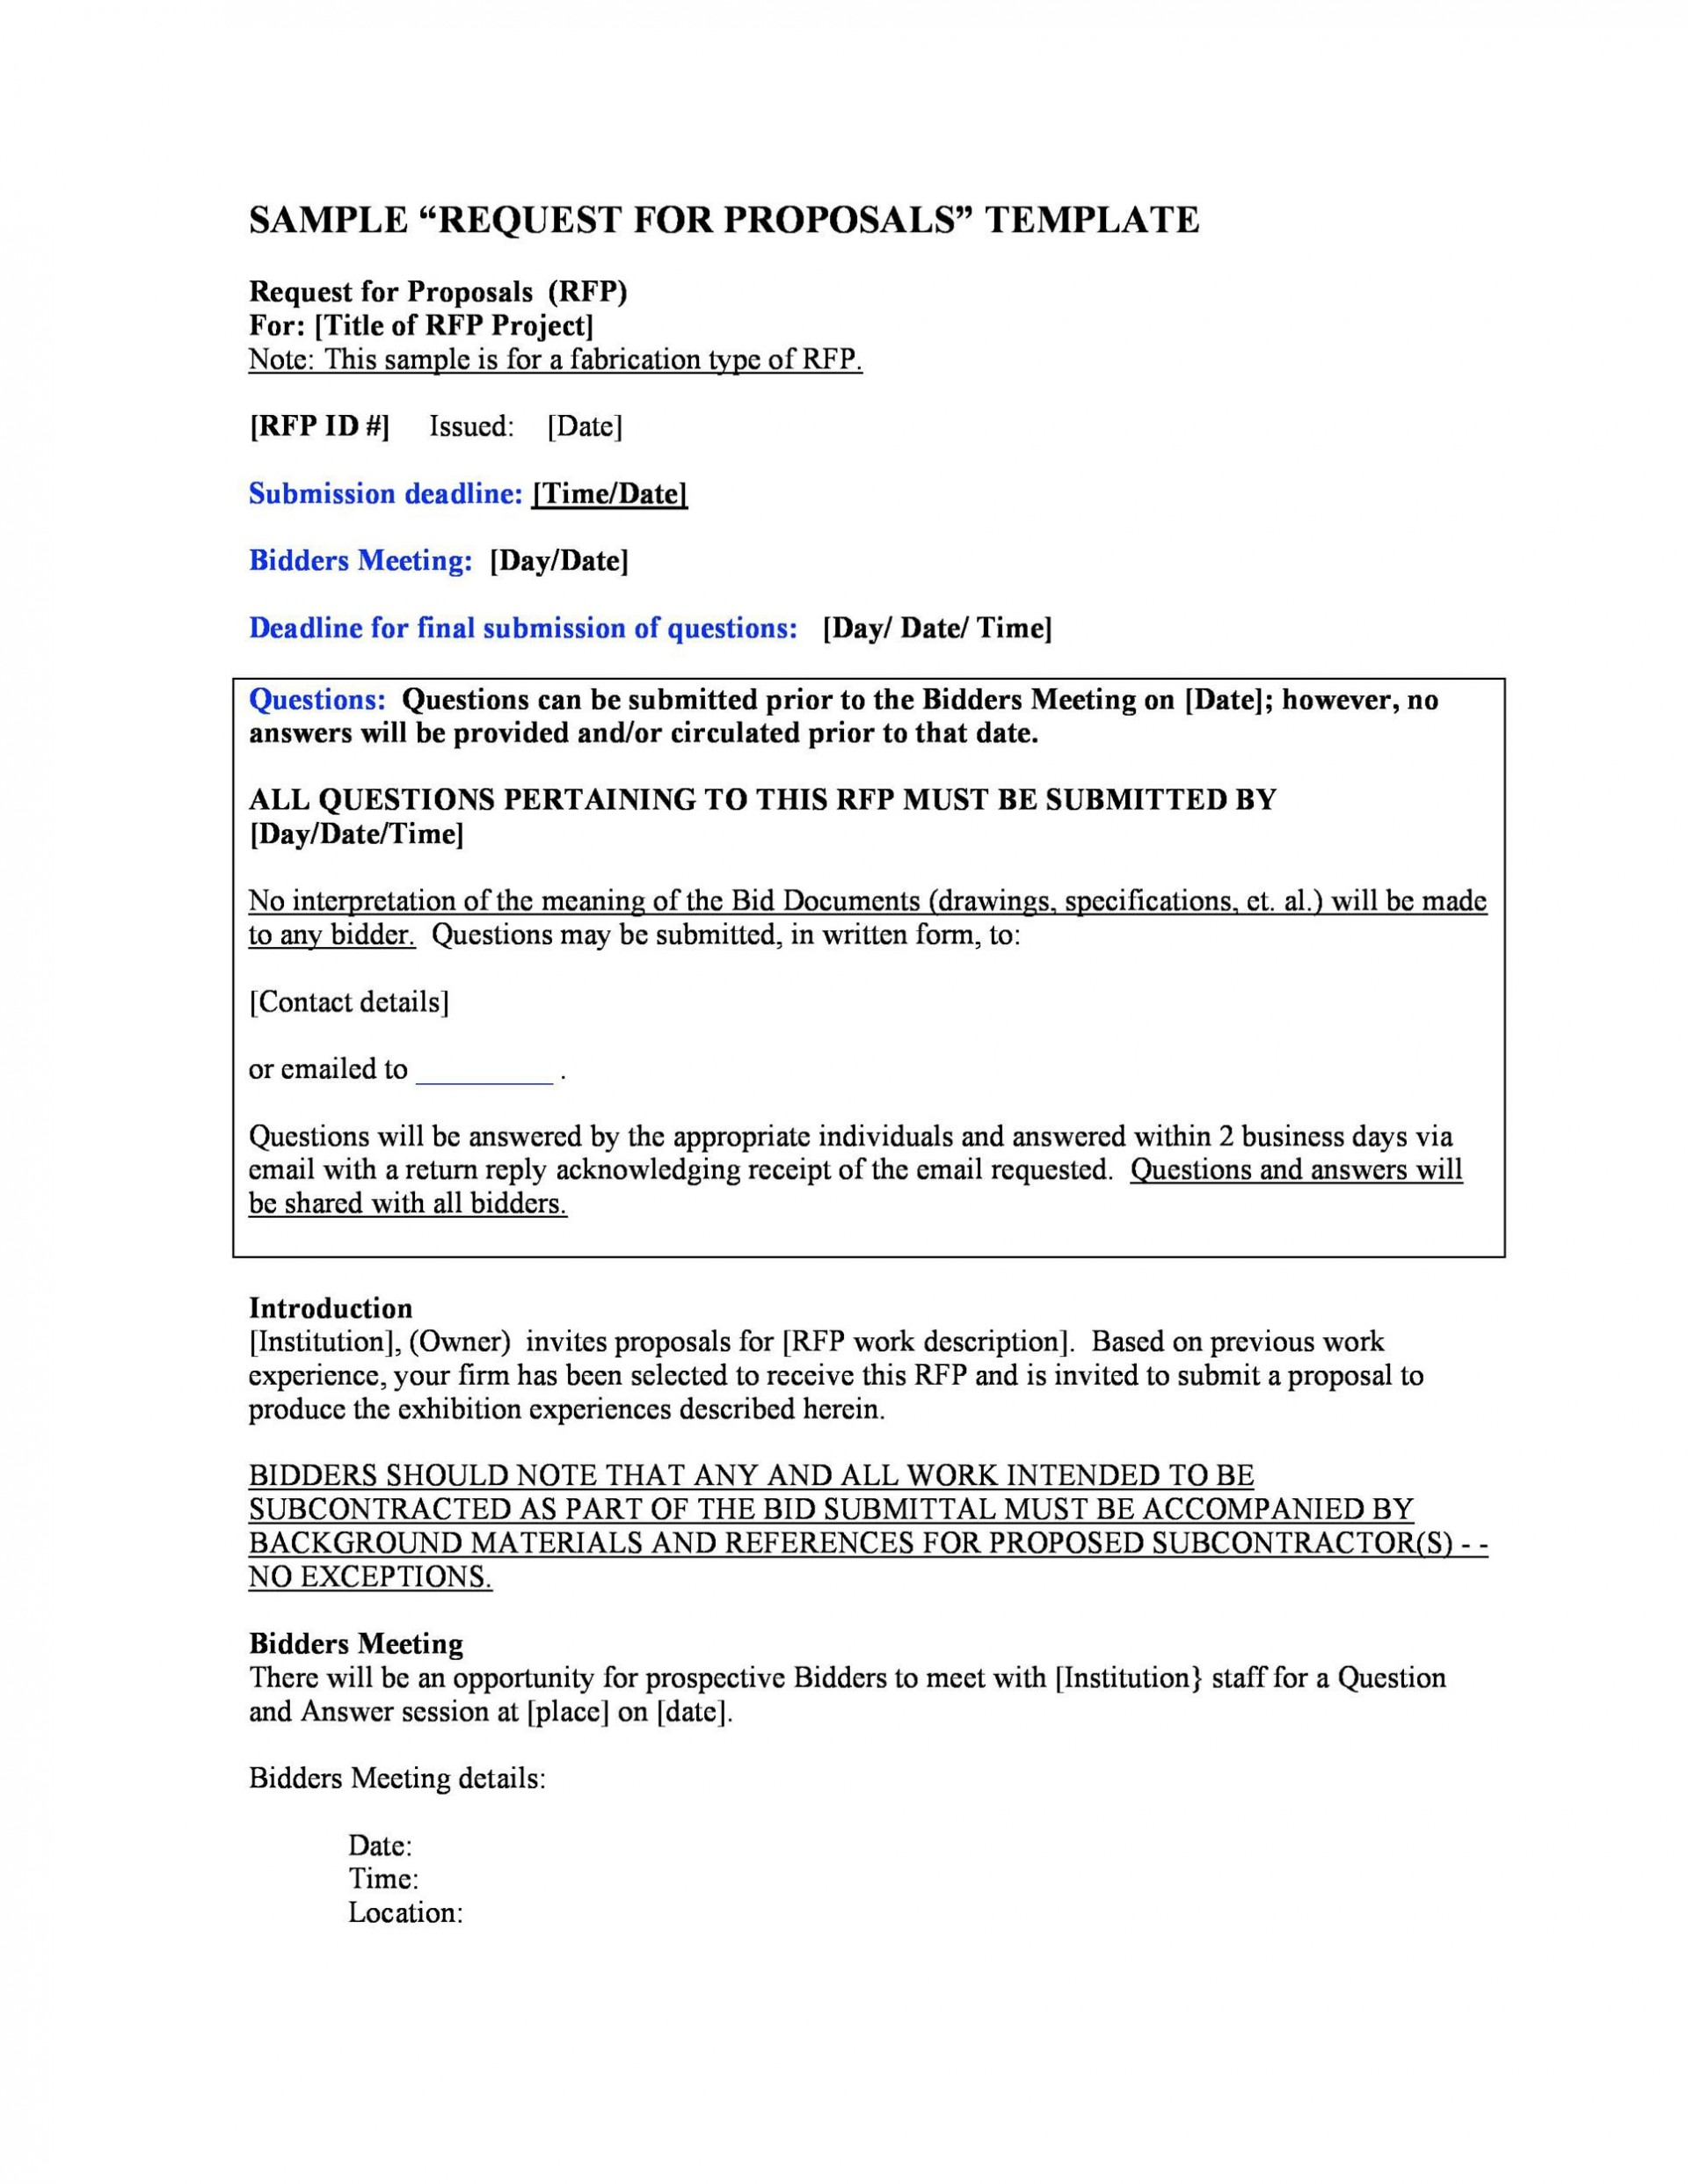 007 Awesome Request For Proposal Rfp Template Construction Picture 1920